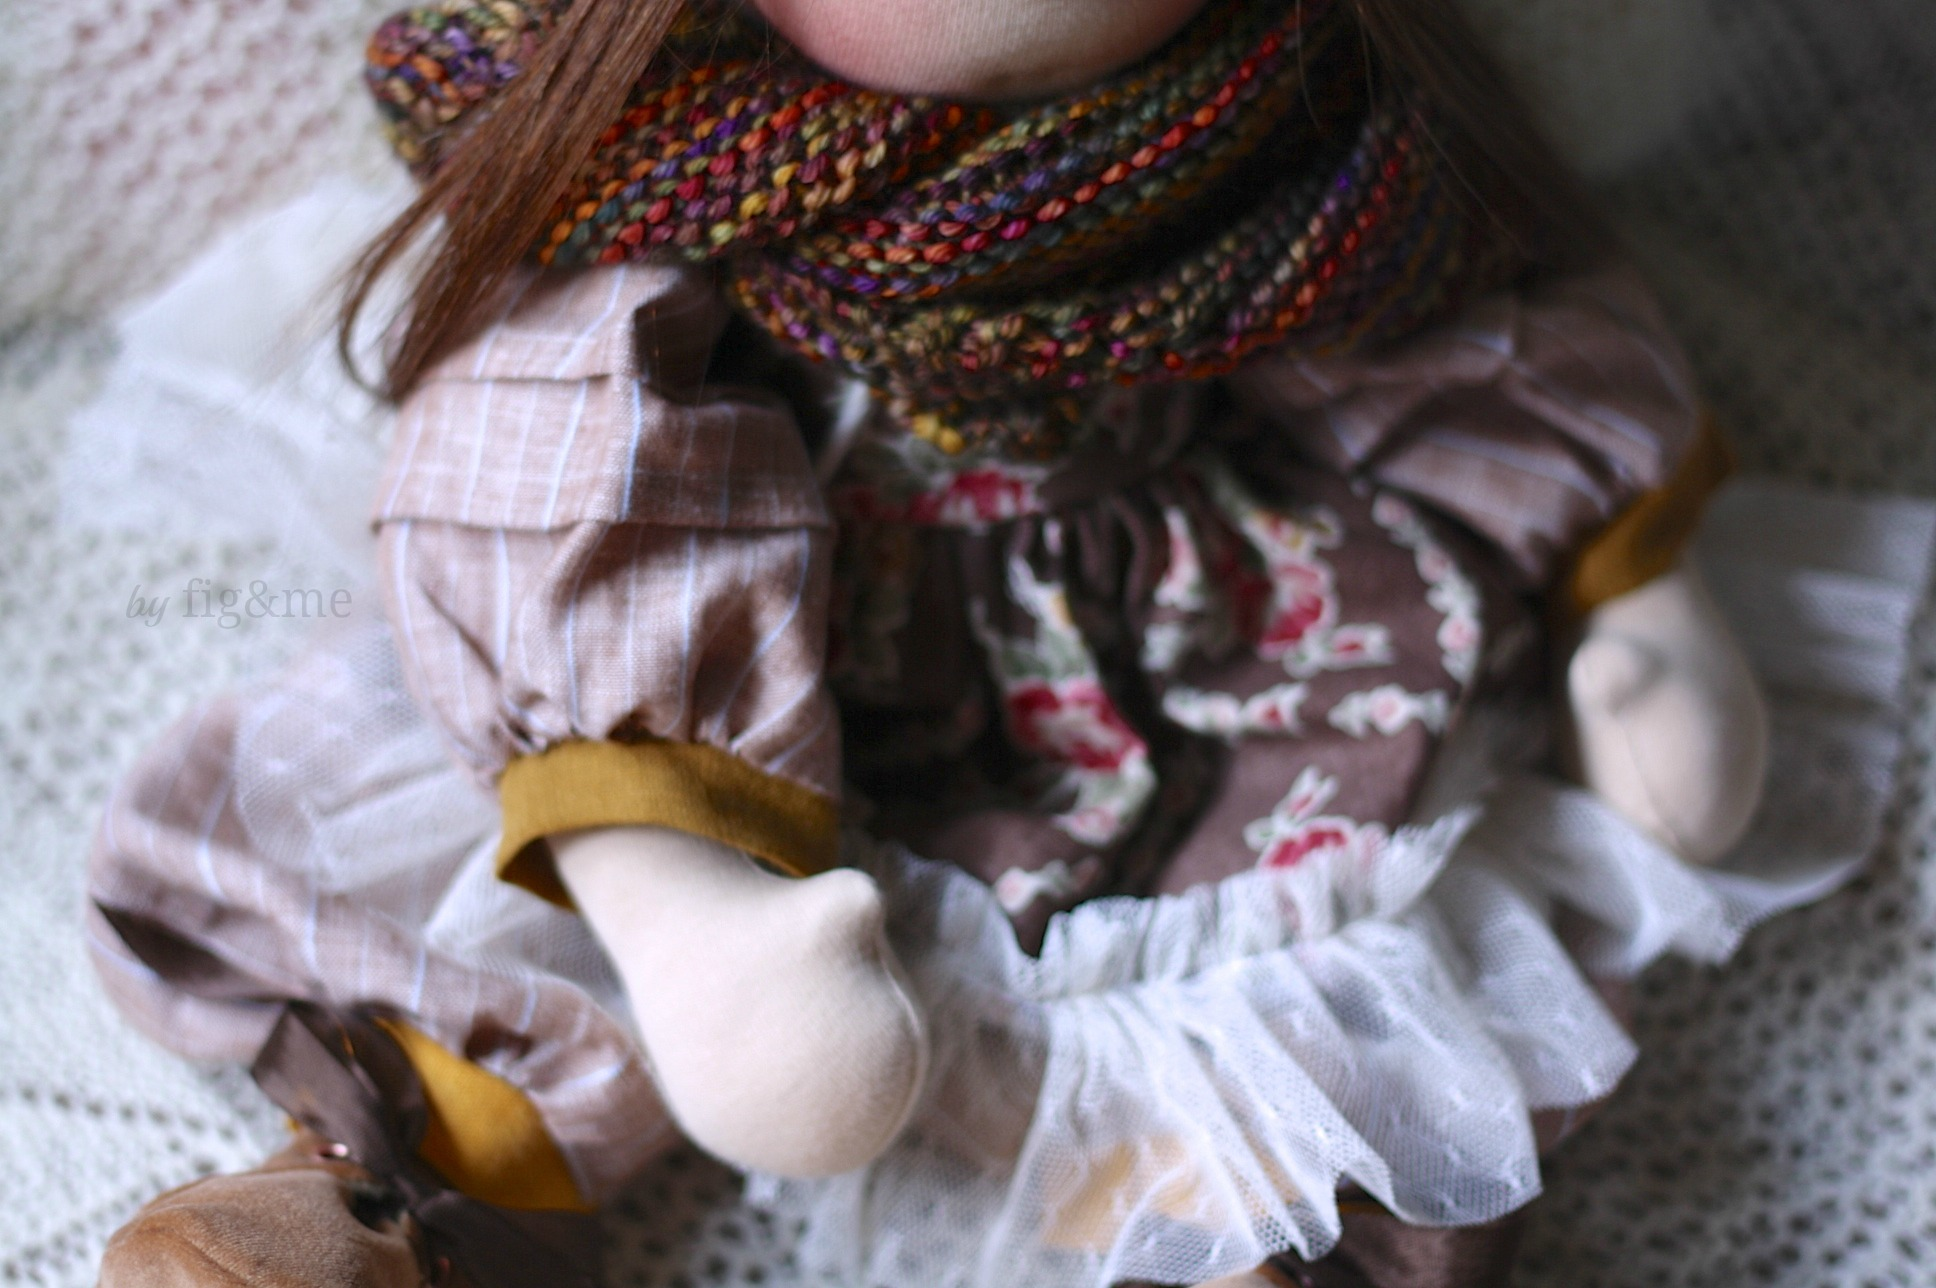 Tina, a handmade doll by Fig and me.